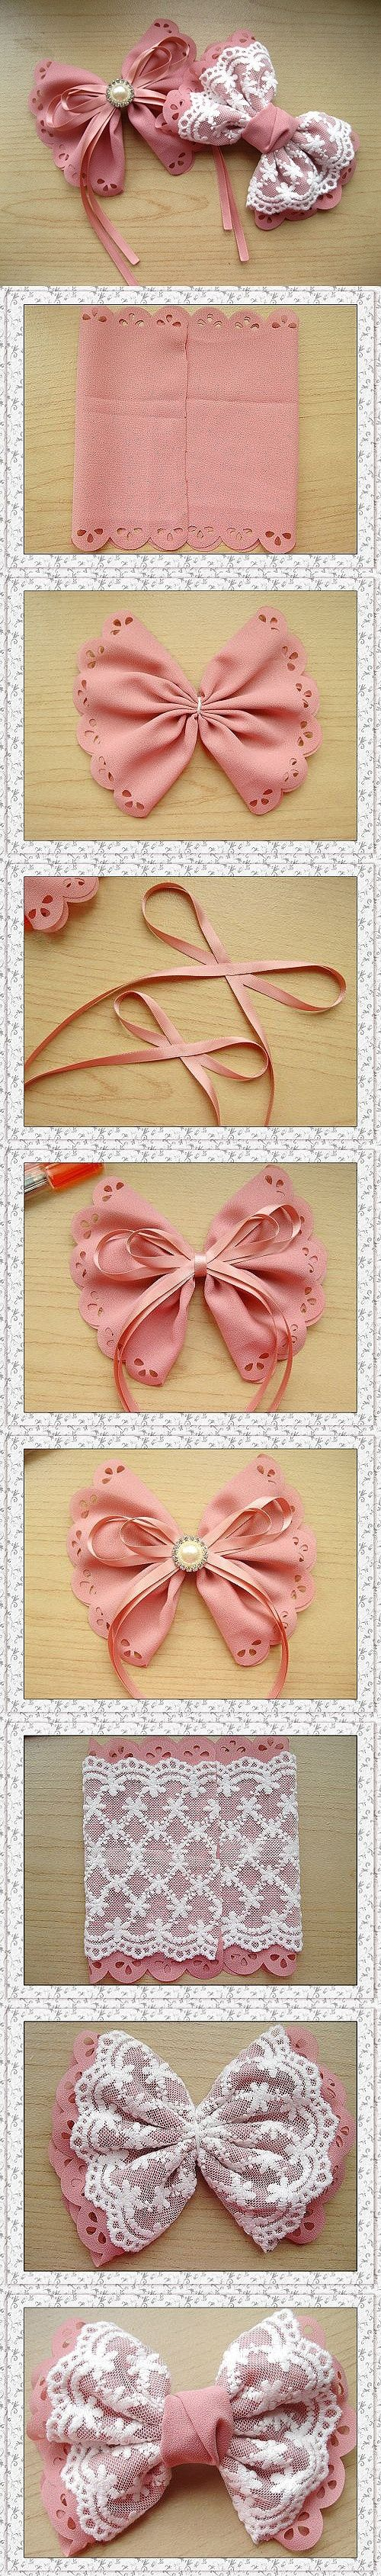 20 DIY Tutorials for Hair Accessories - Handmade Hair Accessories: